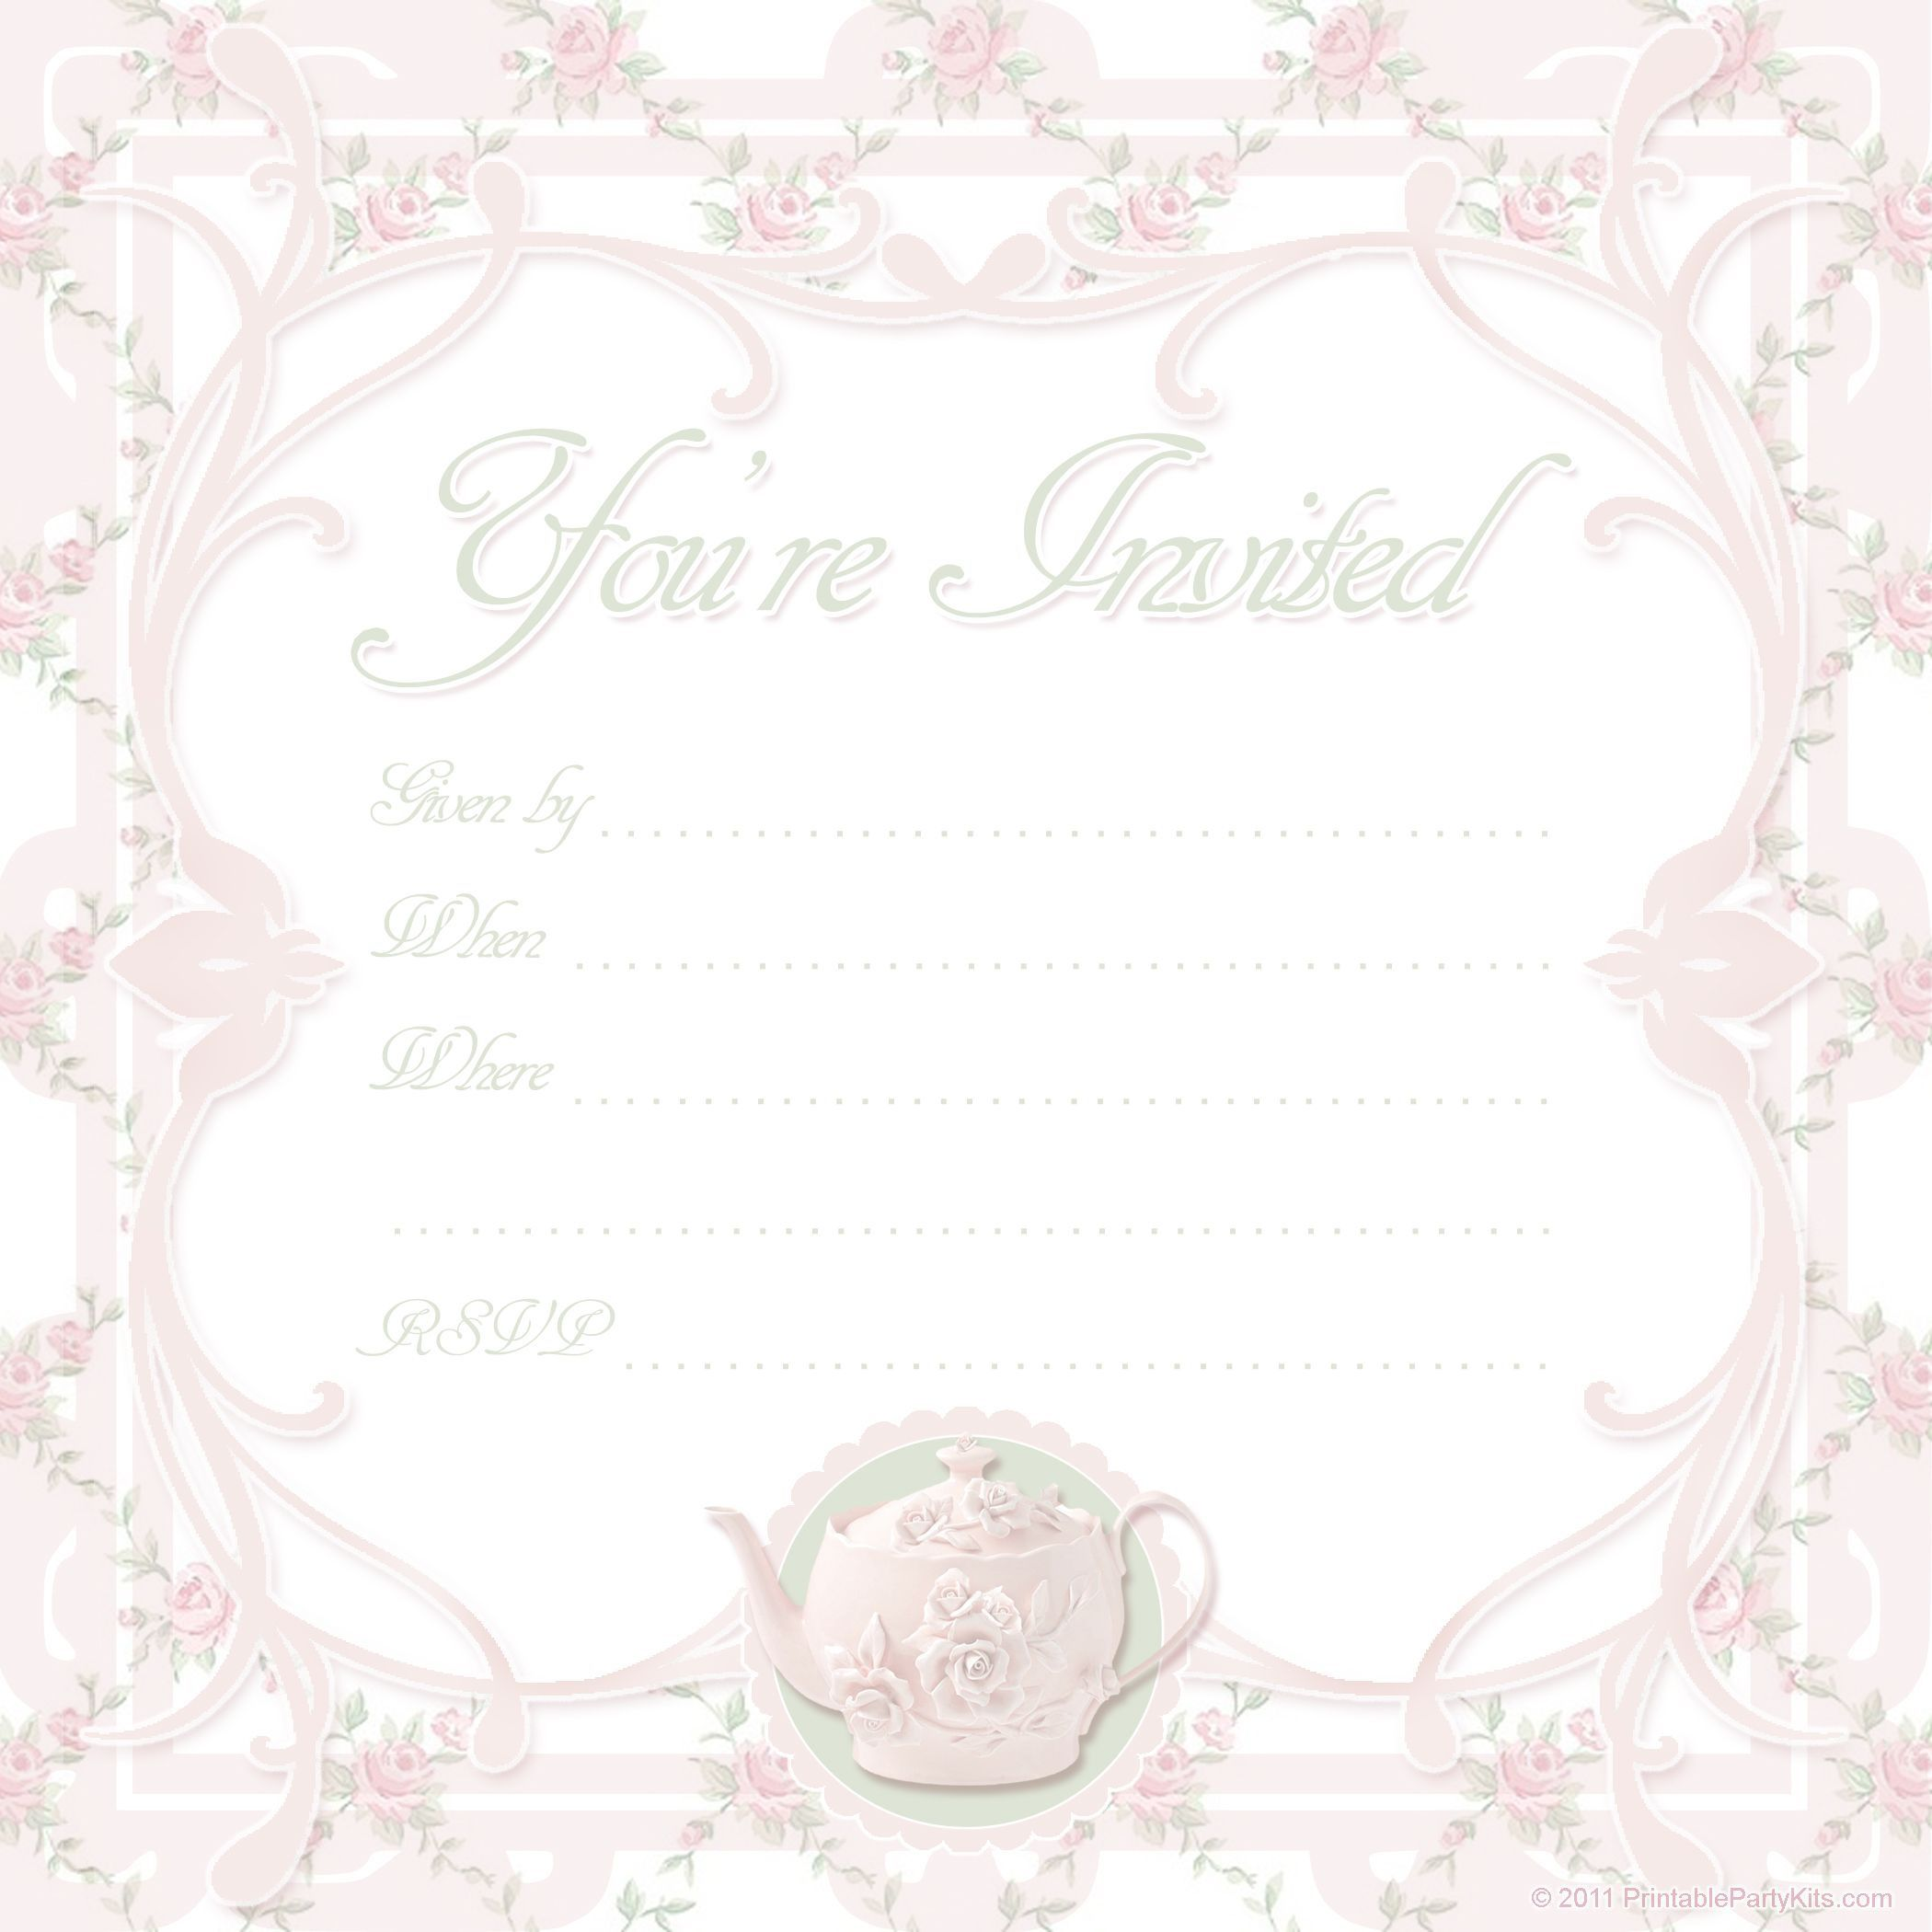 000 Awesome Tea Party Invitation Template High Def  Card Victorian Wording For Bridal ShowerFull